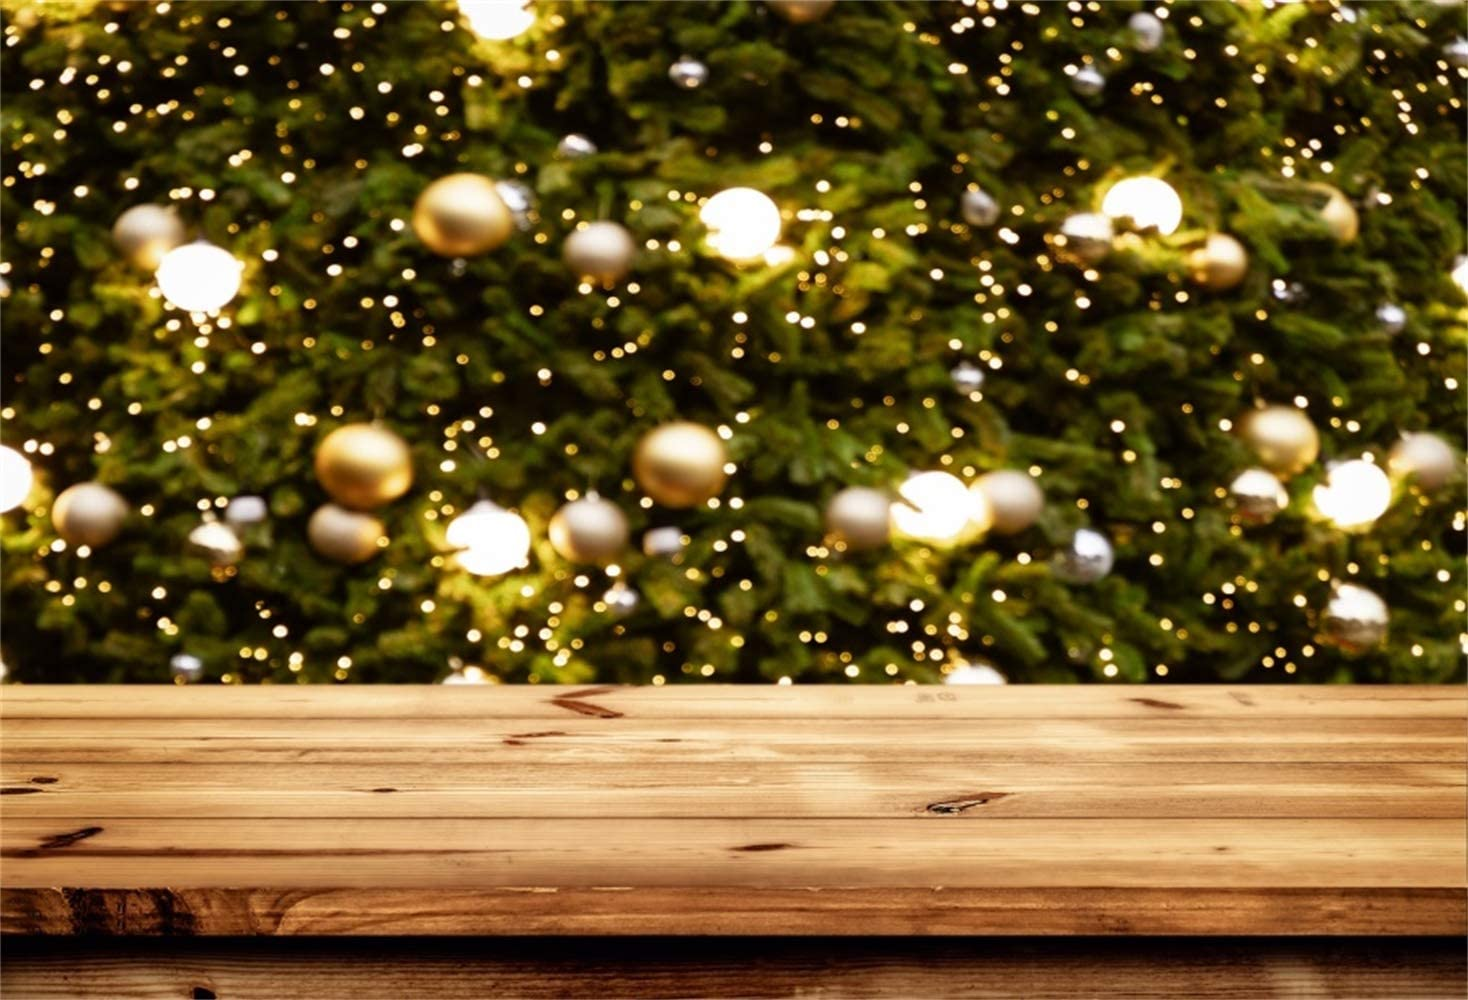 Christmas Backdrop Polyester 8x6.5ft Abstract Bokeh Xmas Tree Golden Xmas Balls Wooden Floor Background Child Kids Adult Shoot Xmas Celebration Party Banner Studio Props